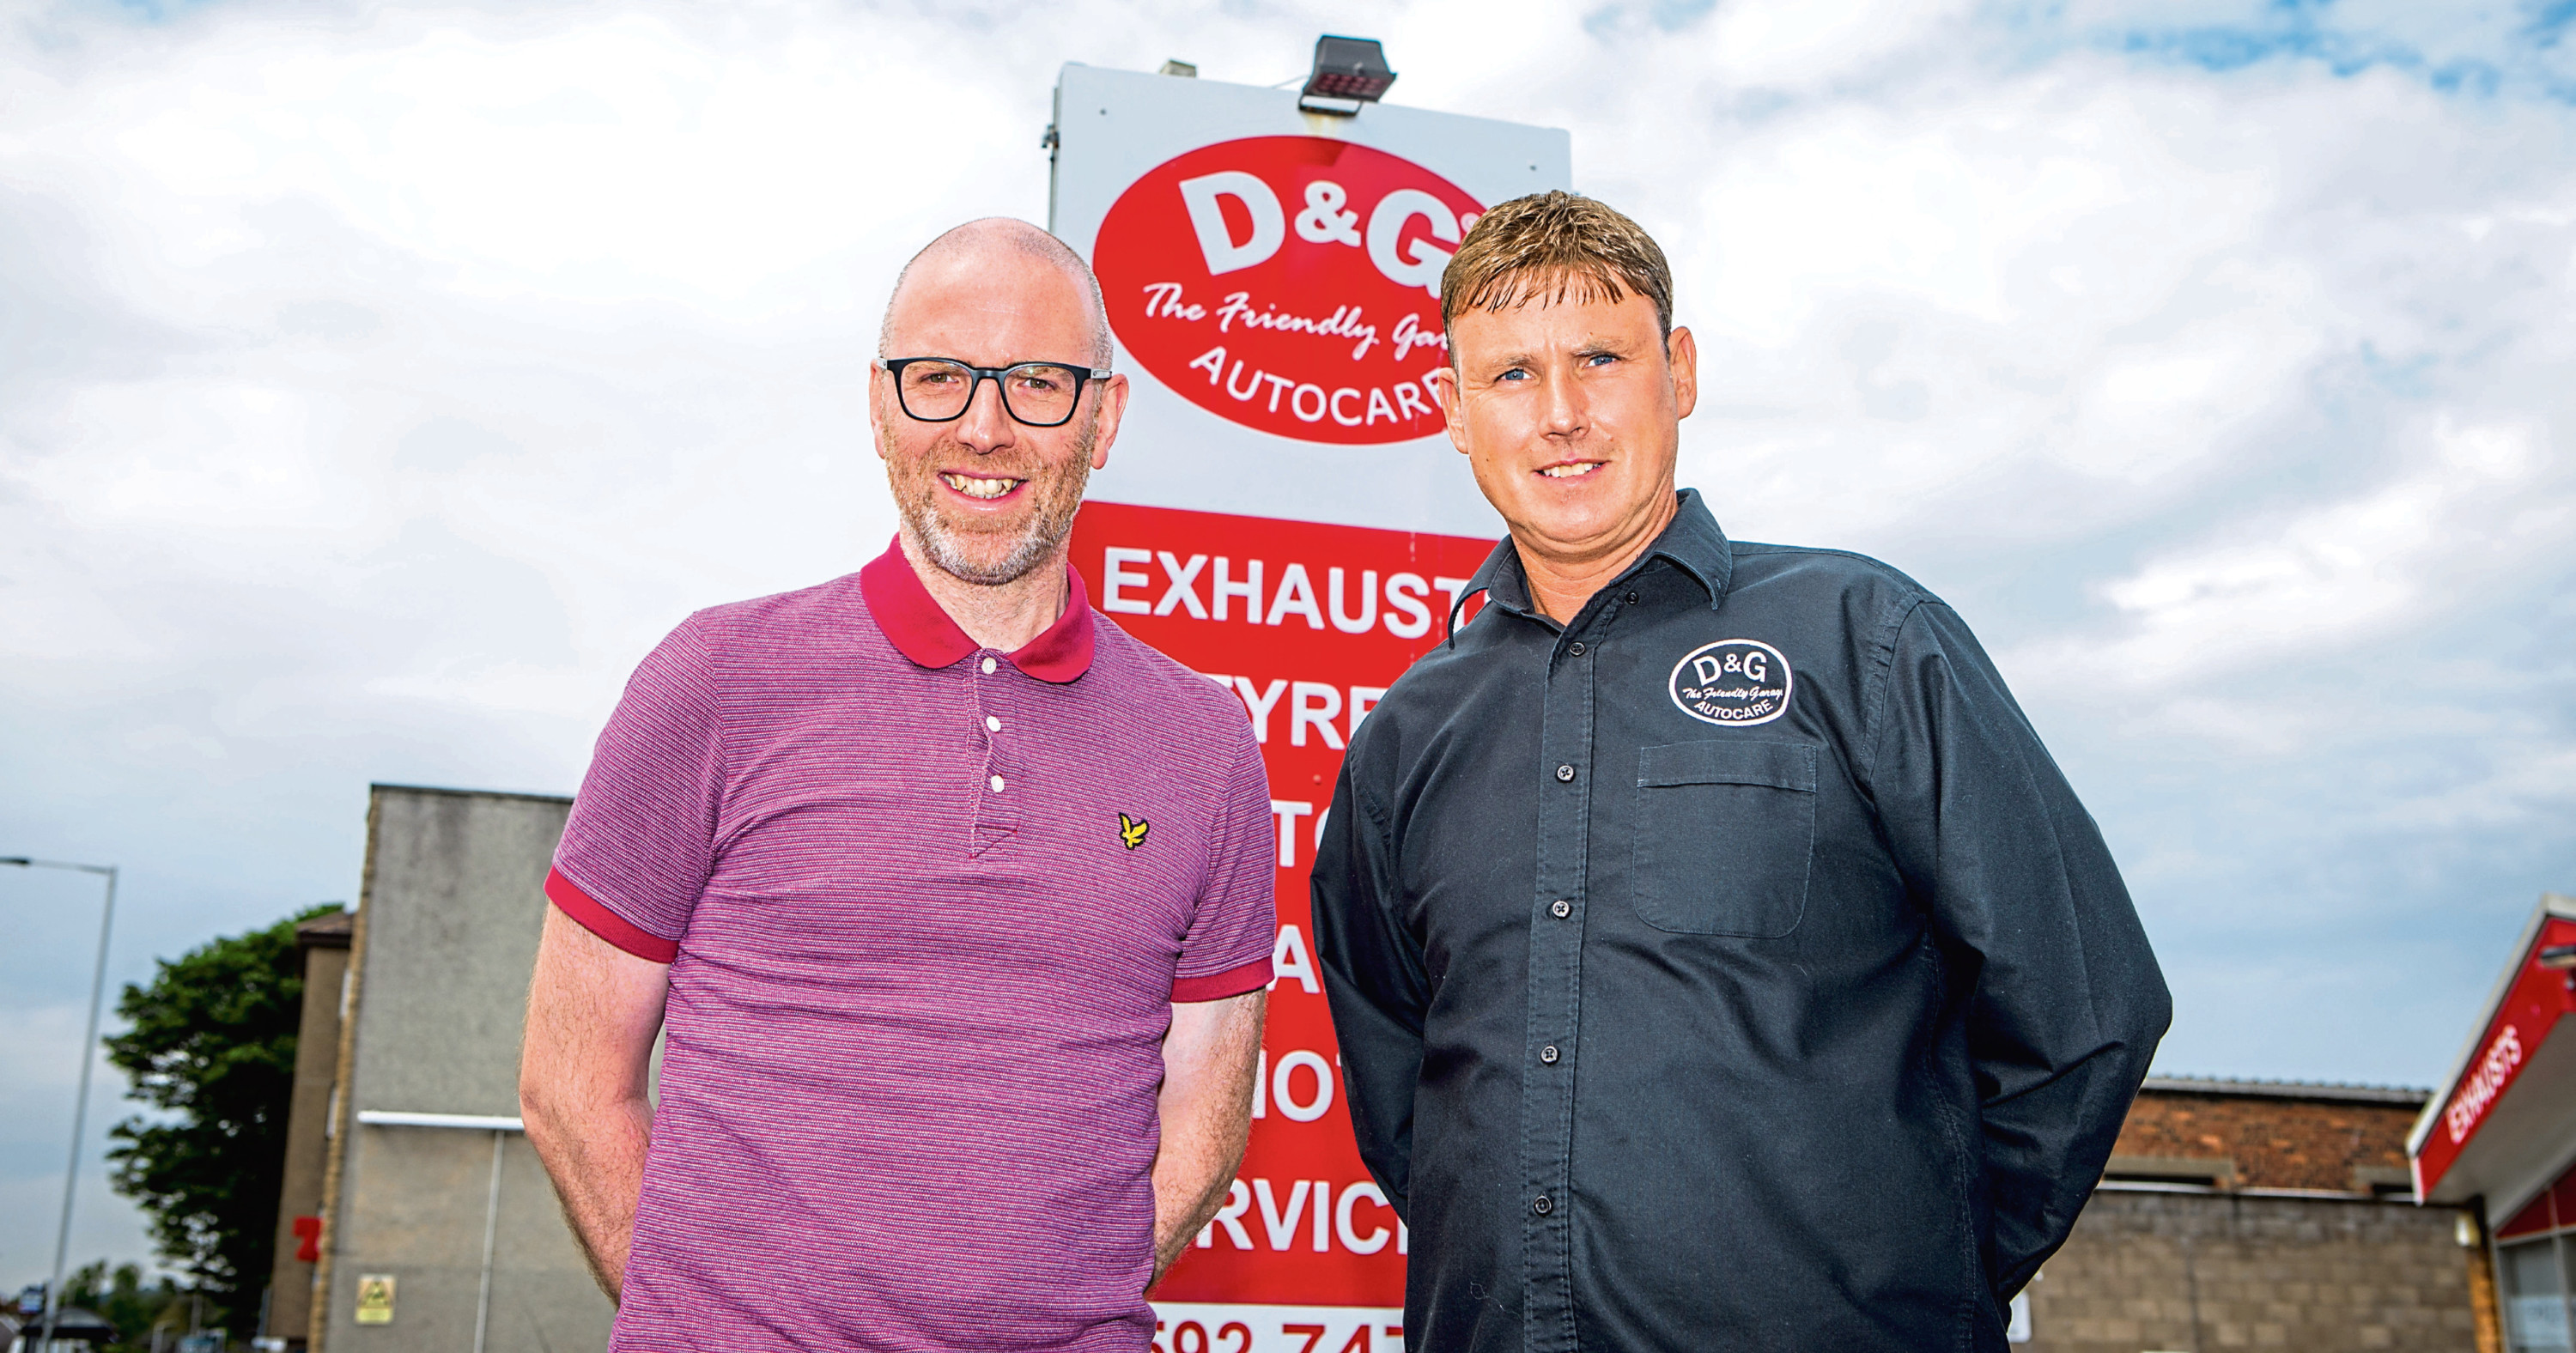 D&G Autocare owners David Hunter and George Simpson.